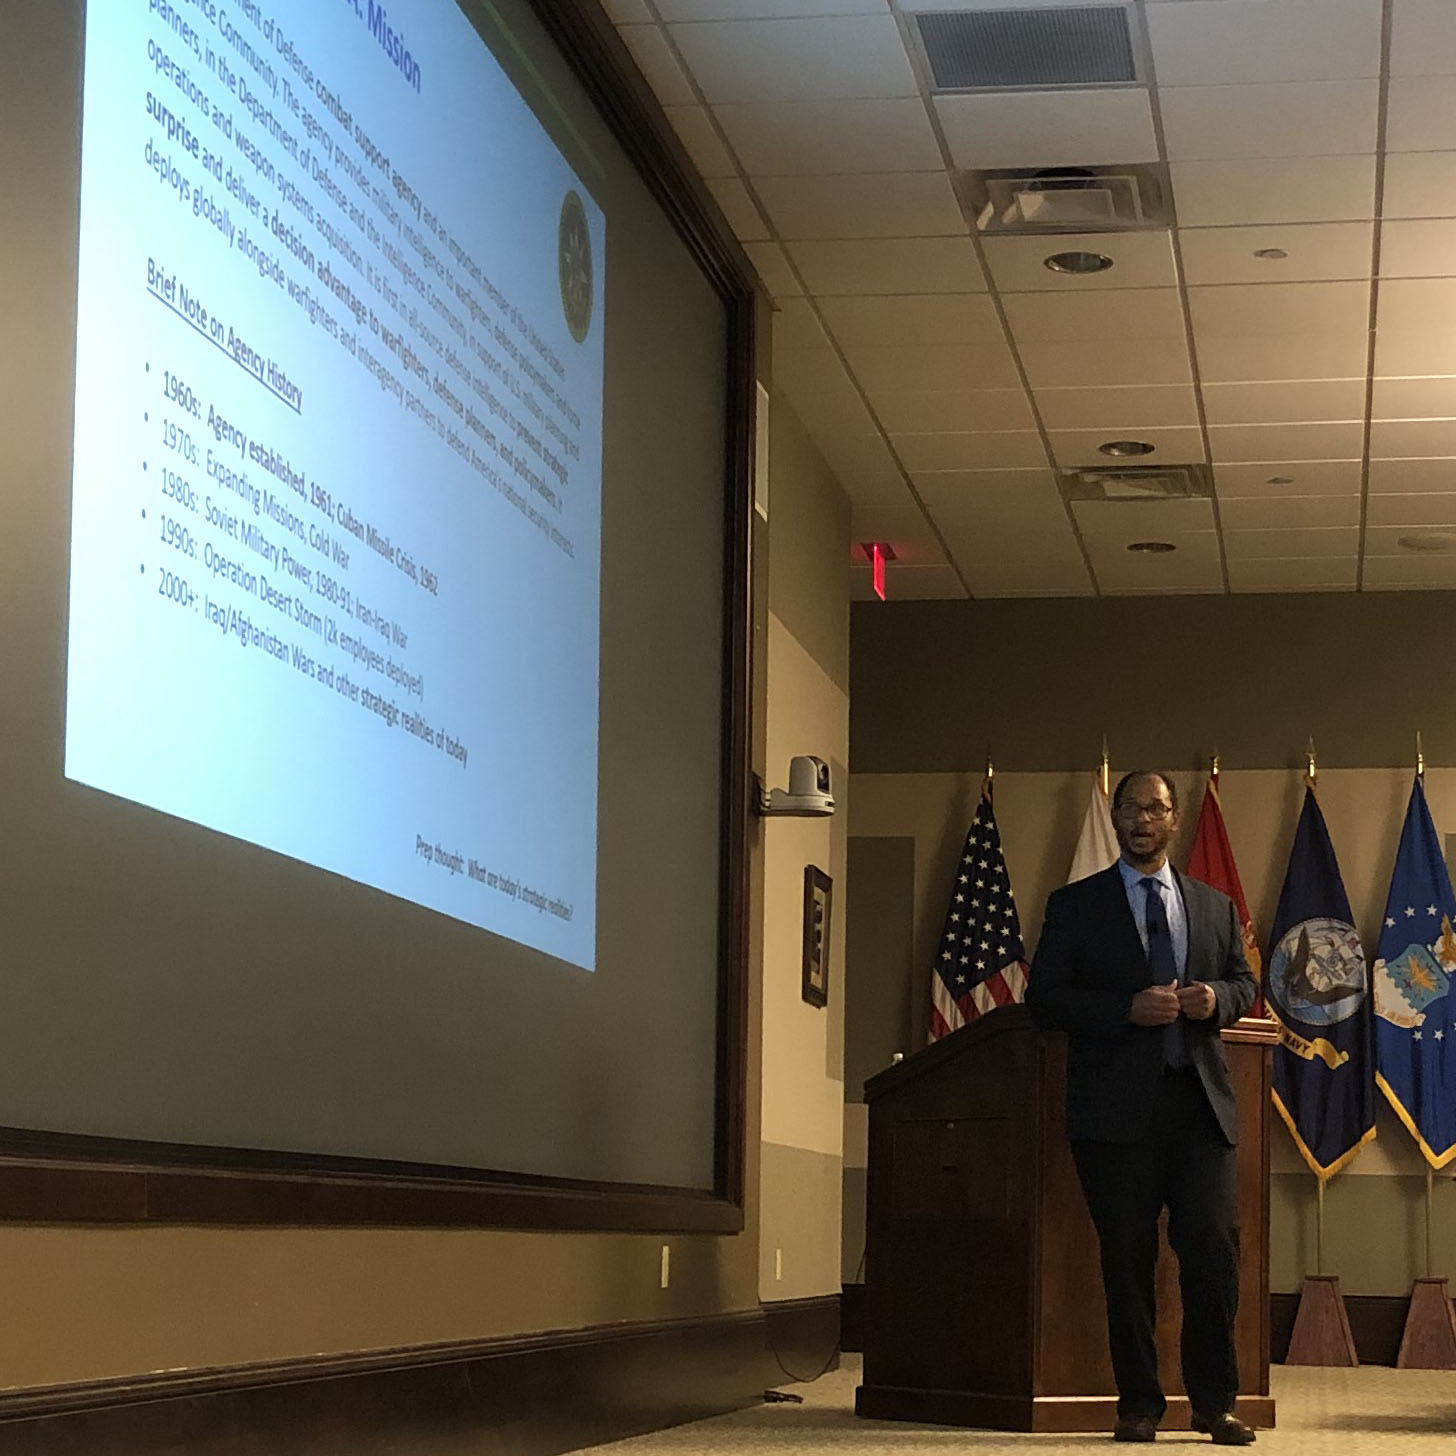 Defense Intelligence Agency subject of latest brown-bag lecture